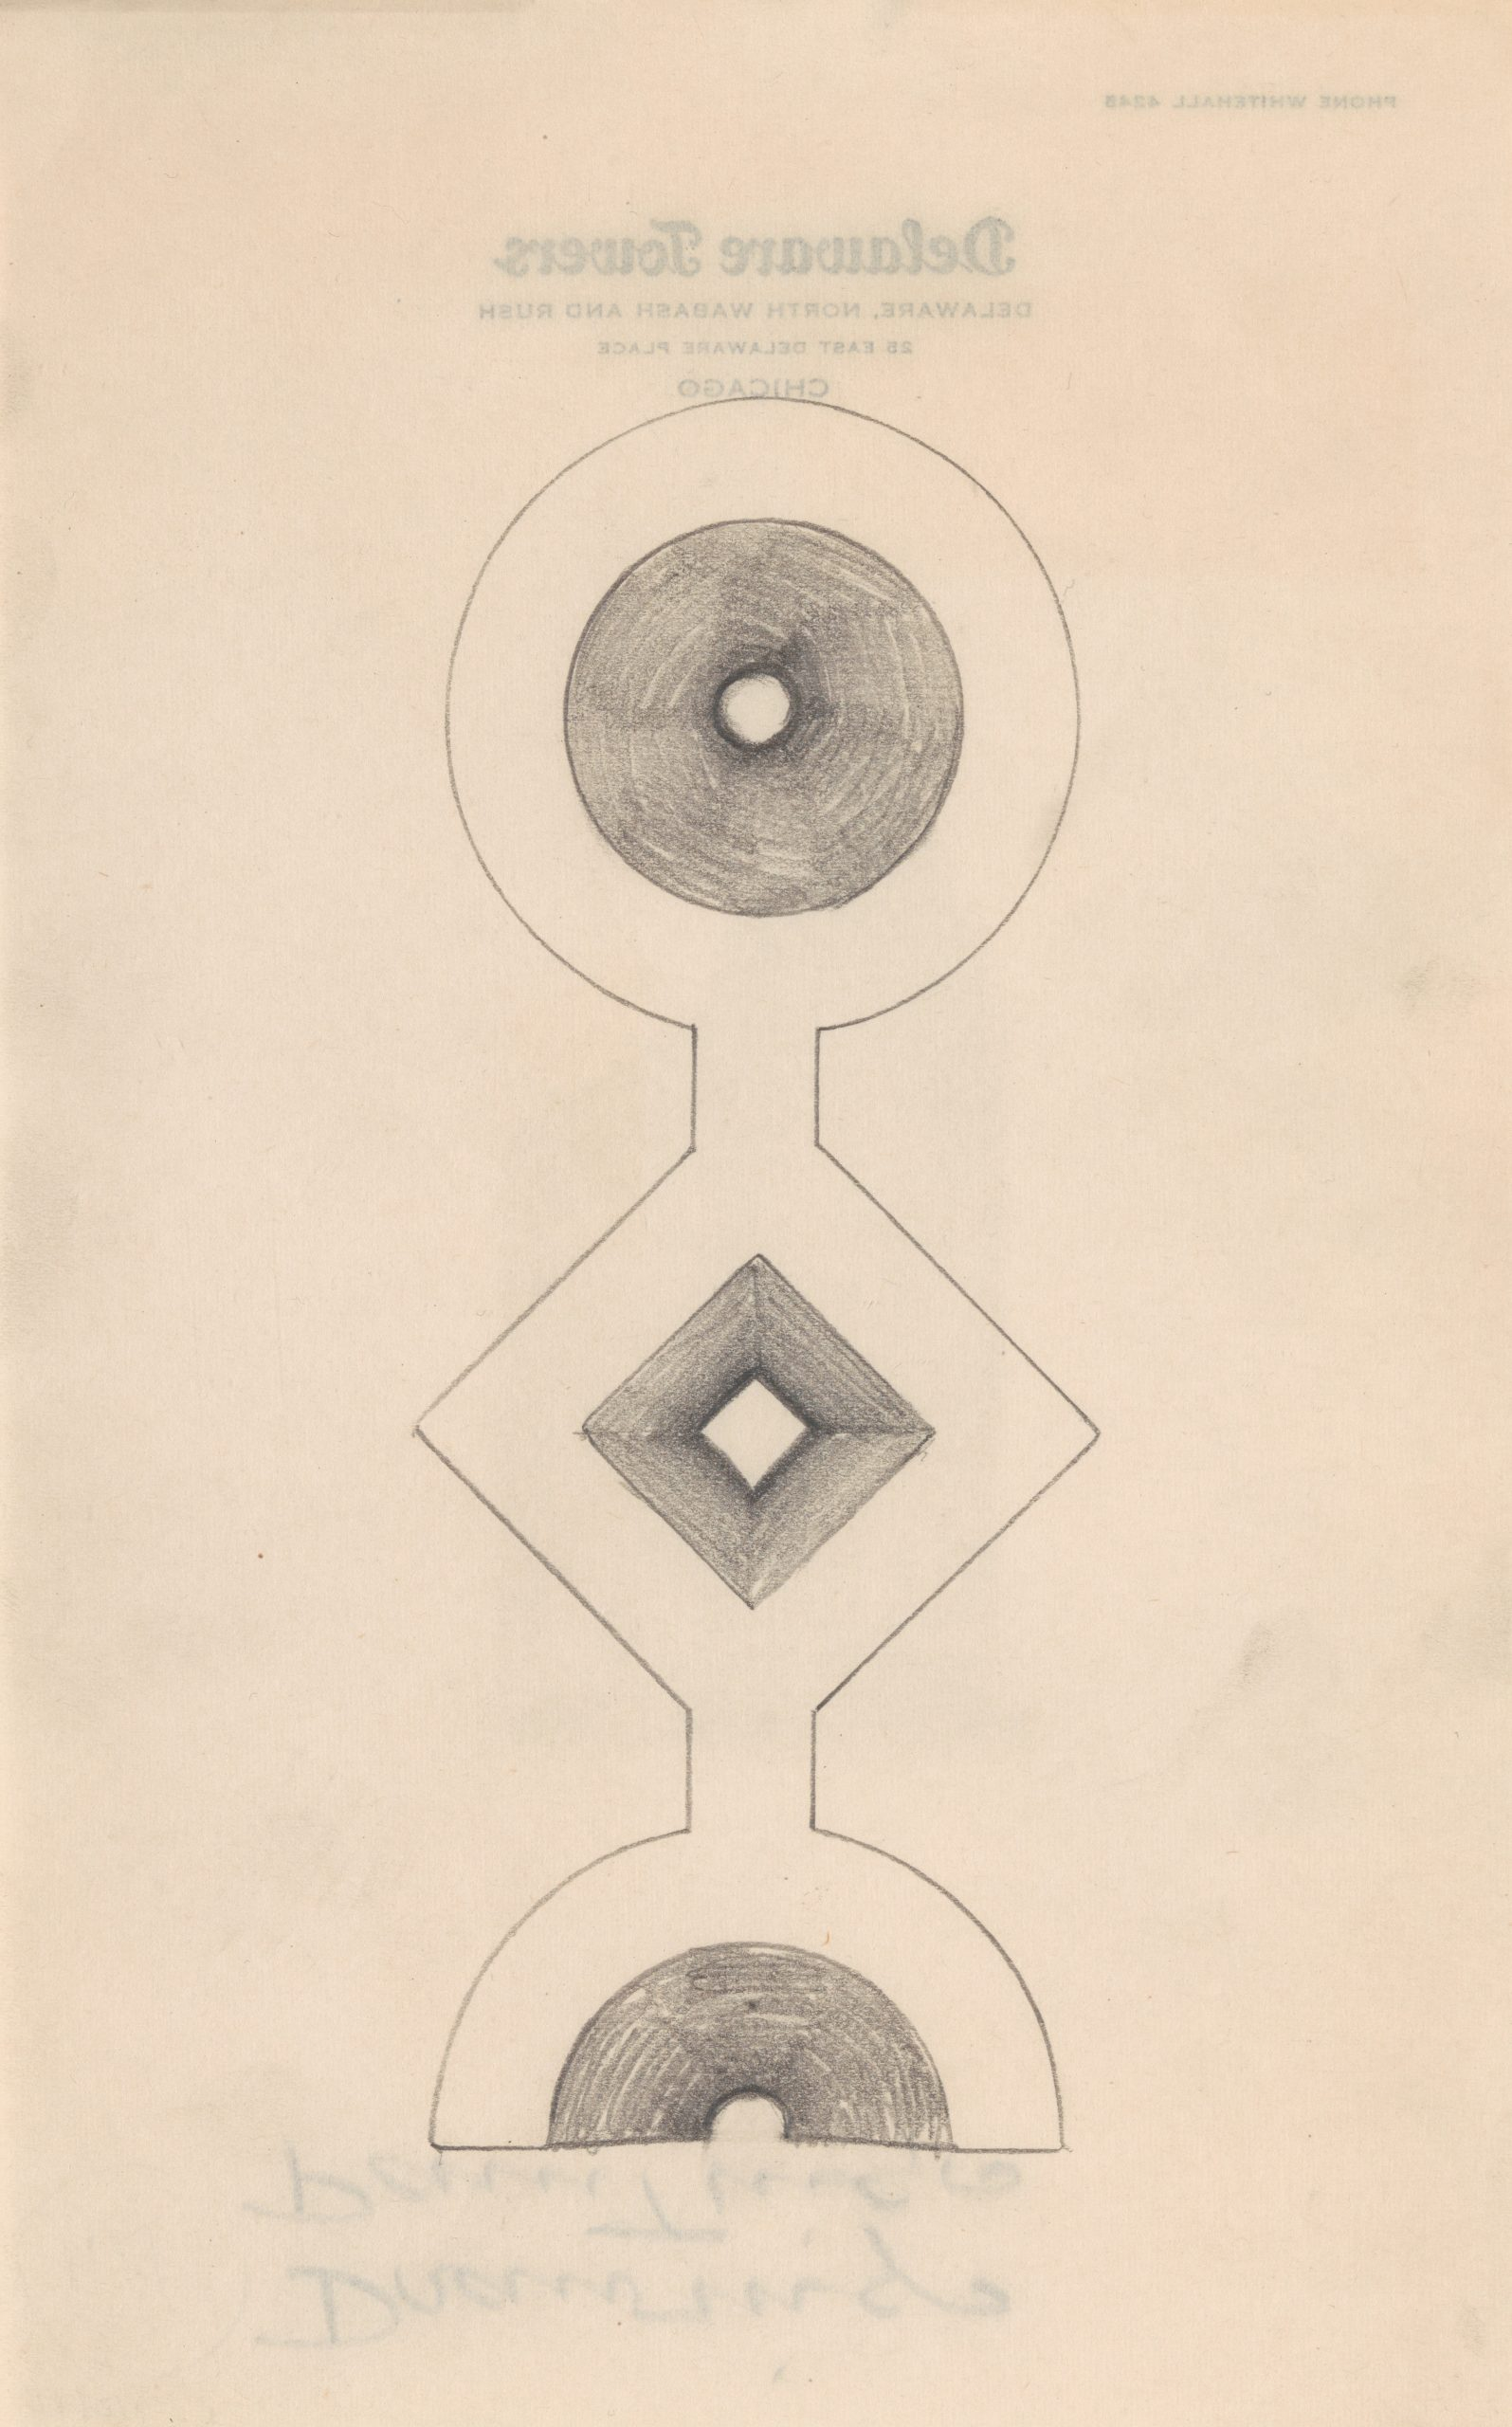 A pencil drawing of a totem-like figure made of a circle and diamond that ends on a half circle.